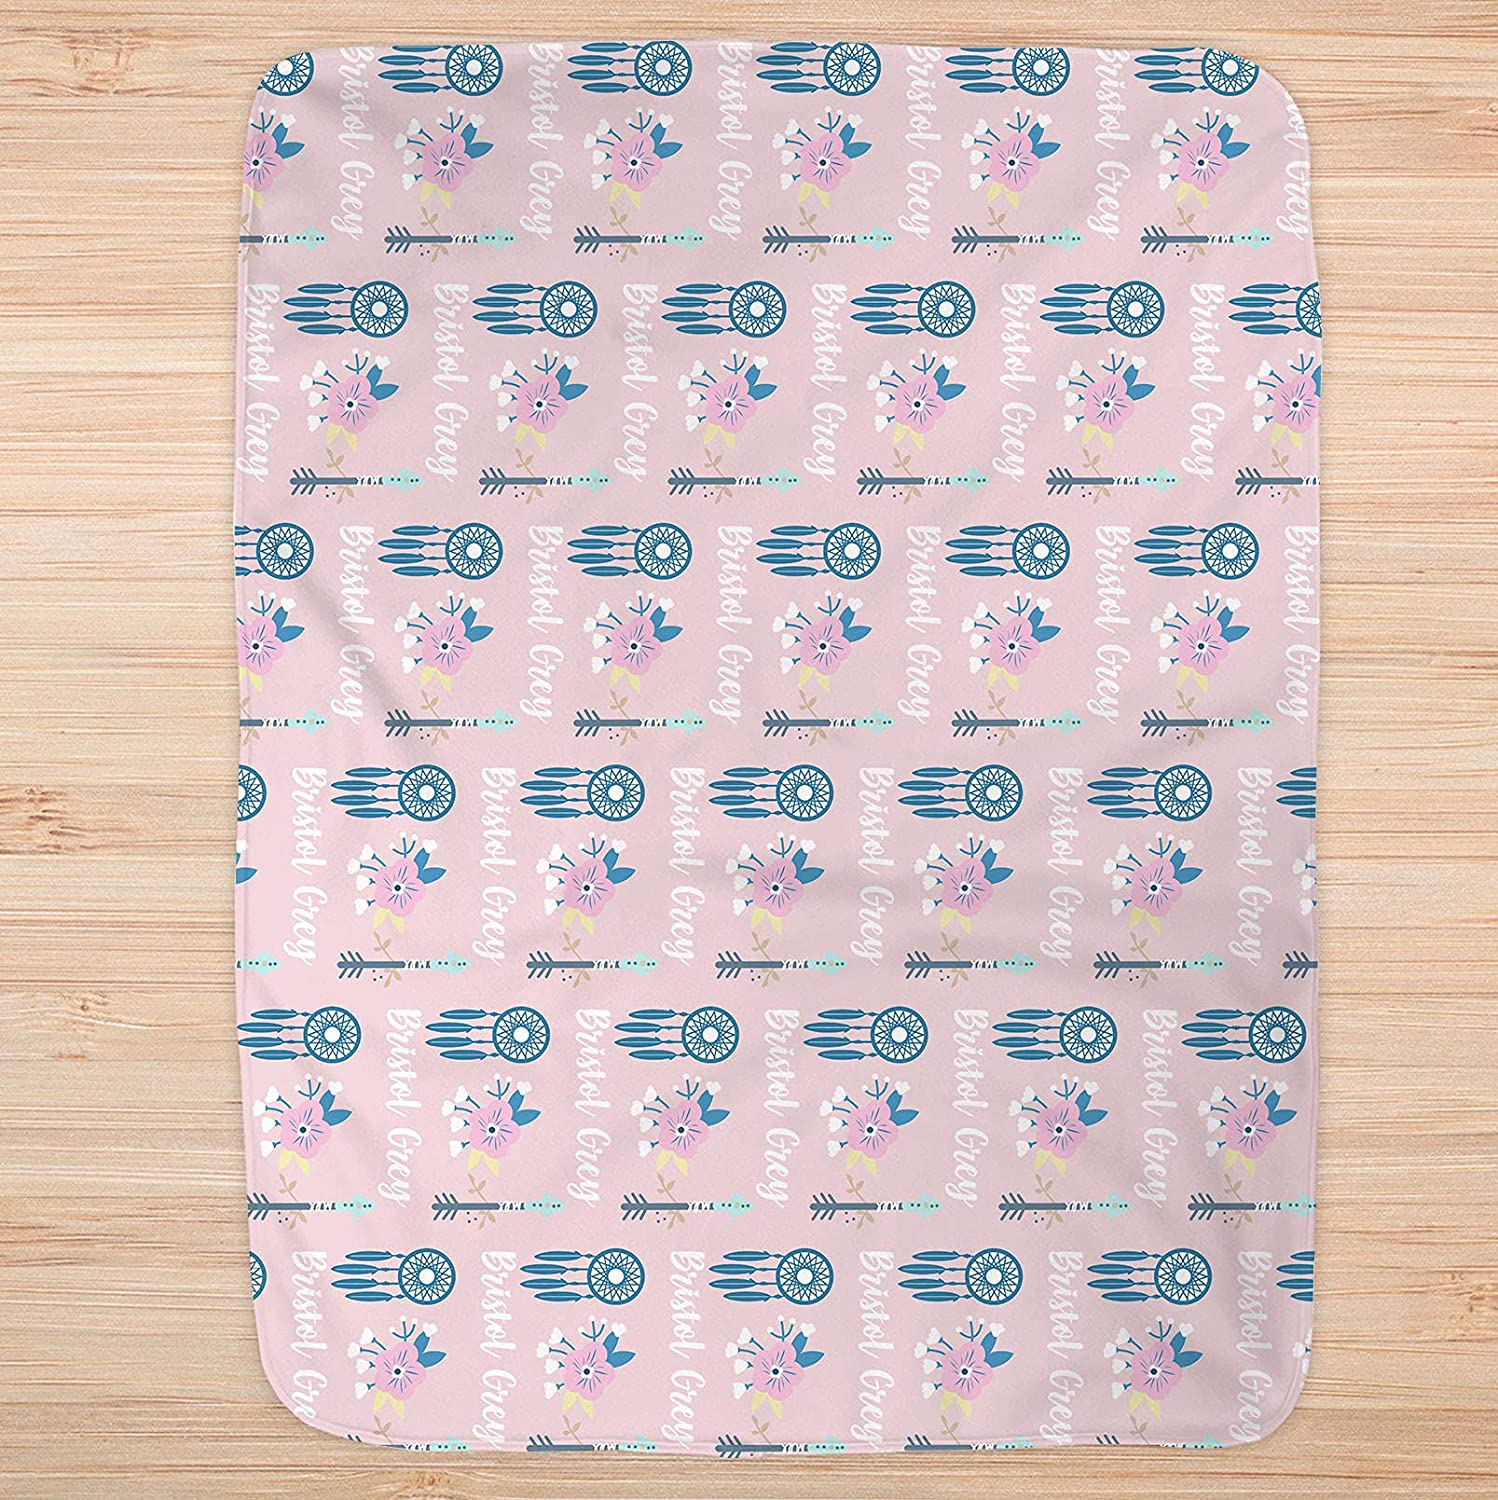 Personalized Blanket- Personalize Baby Name Blanket Special price for a limited time Blank Overseas parallel import regular item